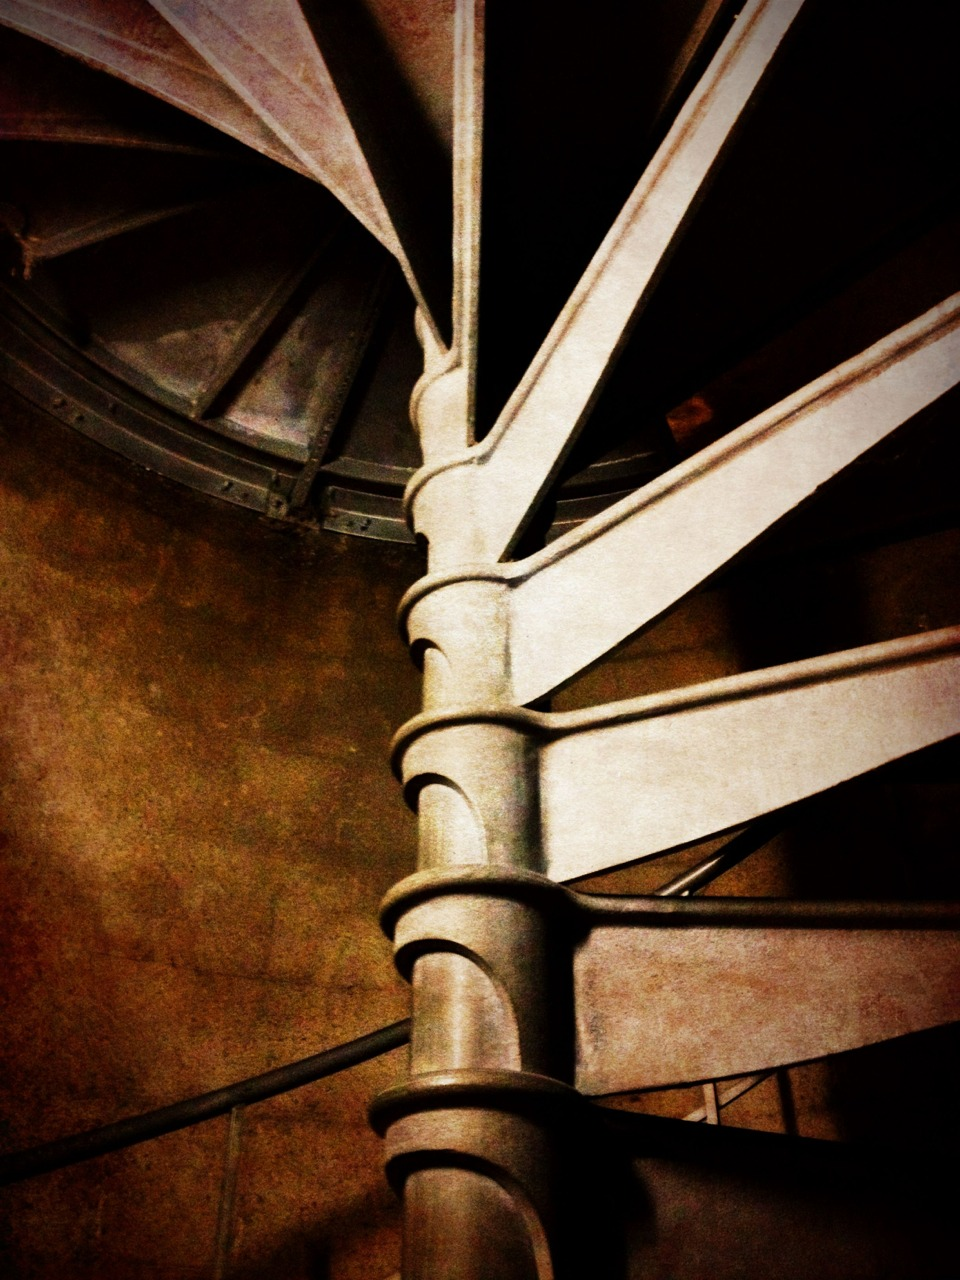 Up the spiral staircase.